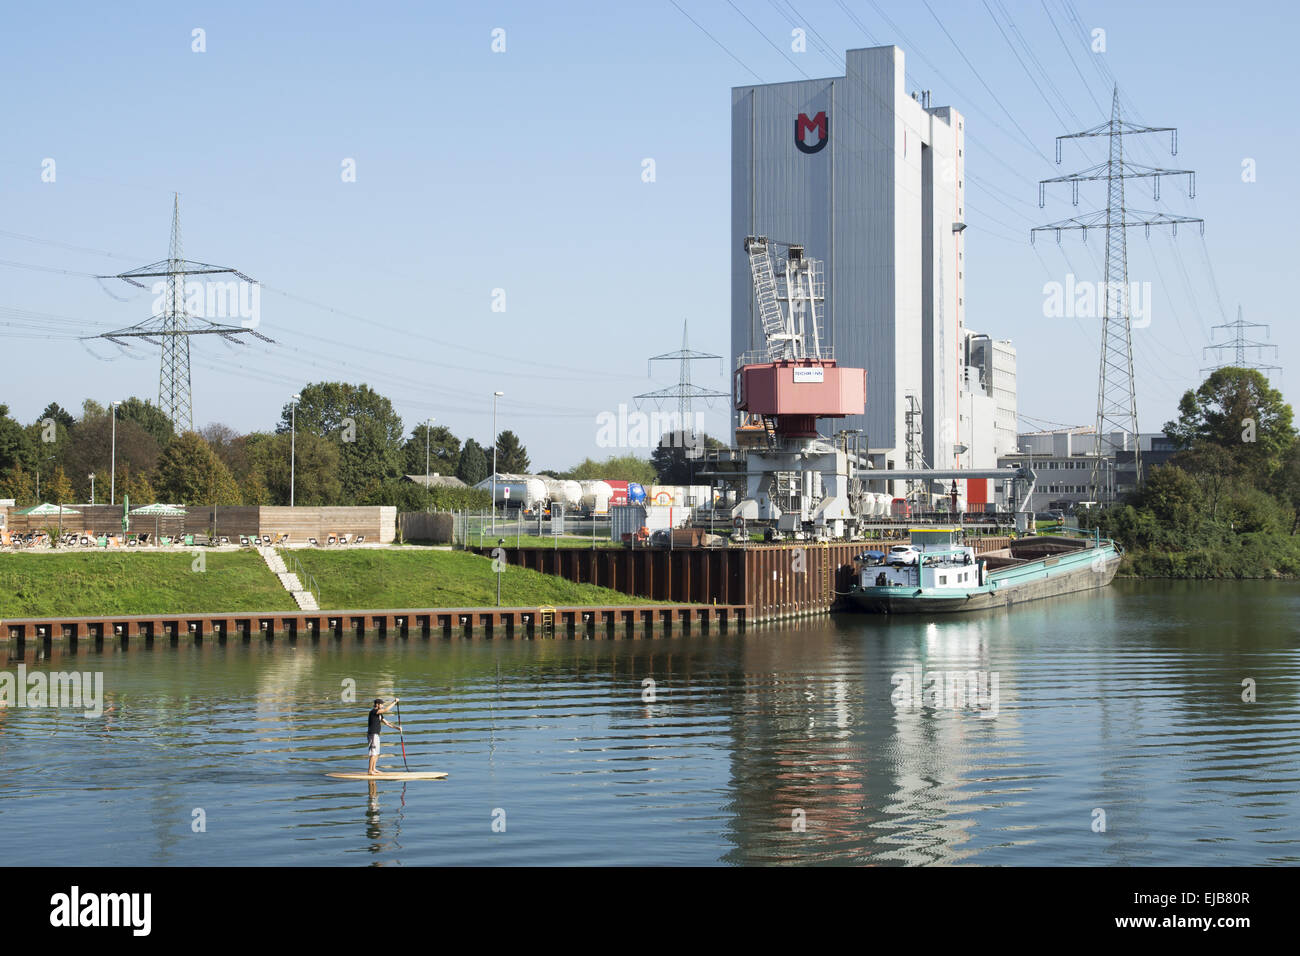 The City harbor in Recklinghausen, Germany - Stock Image